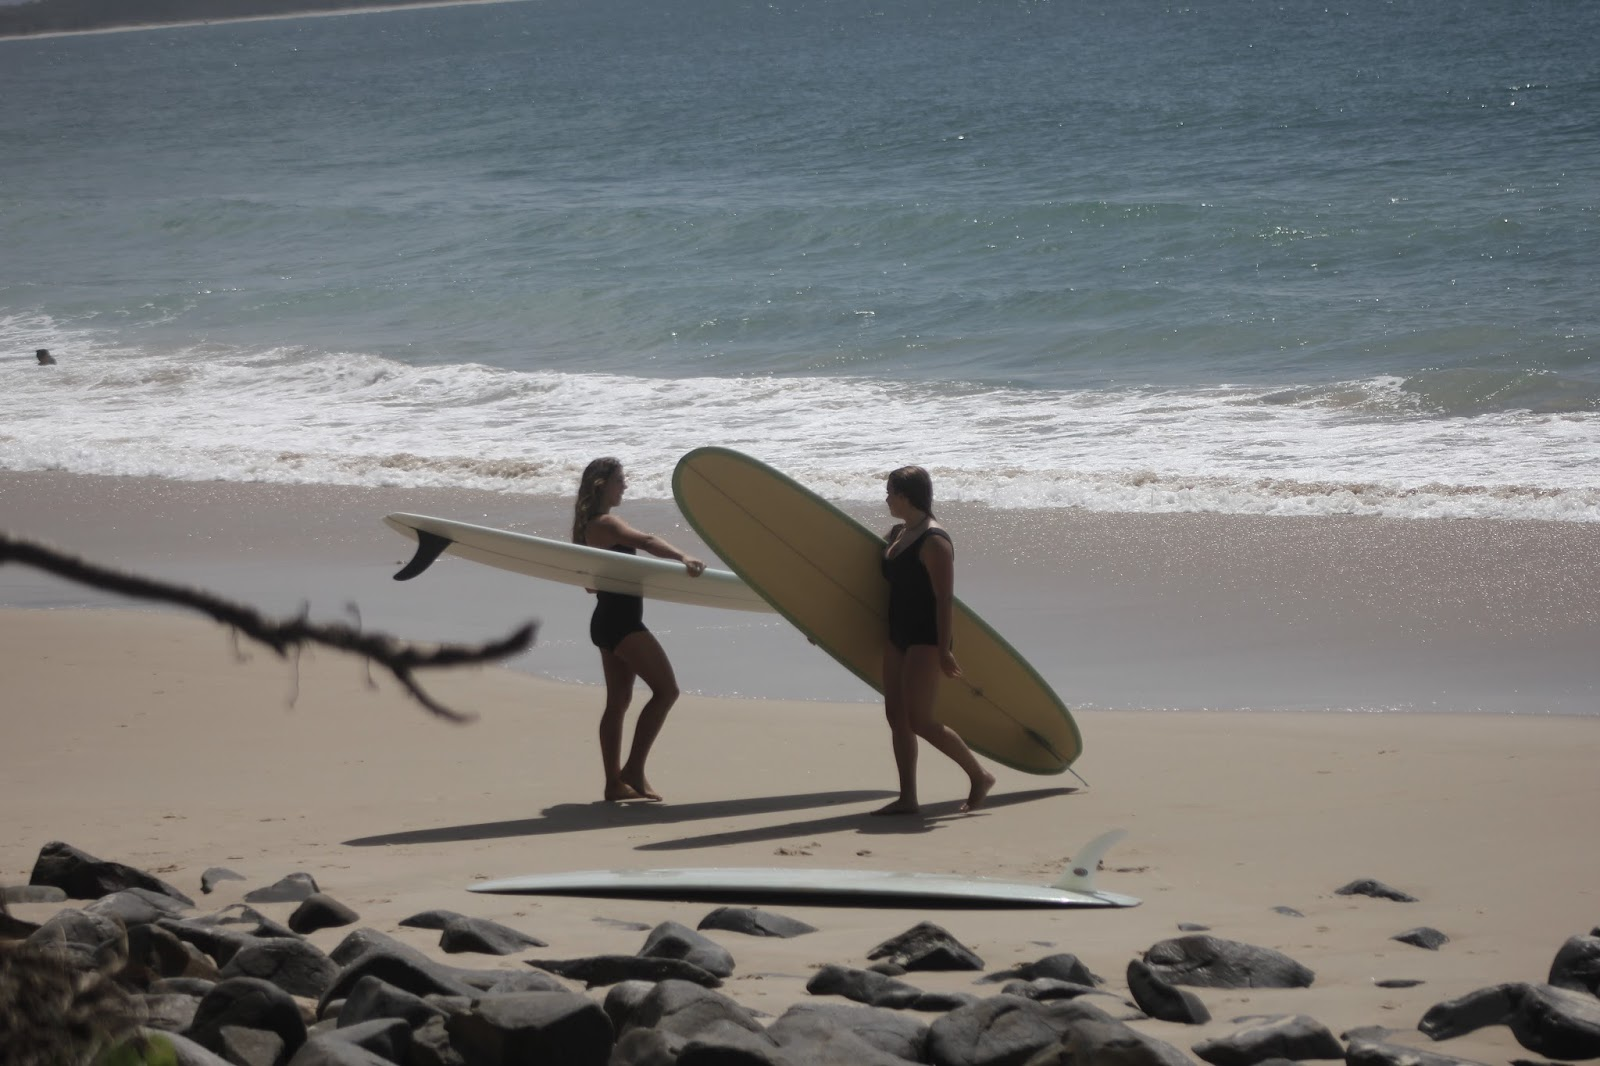 11-03-2016-australia-siebert-surfboards-05